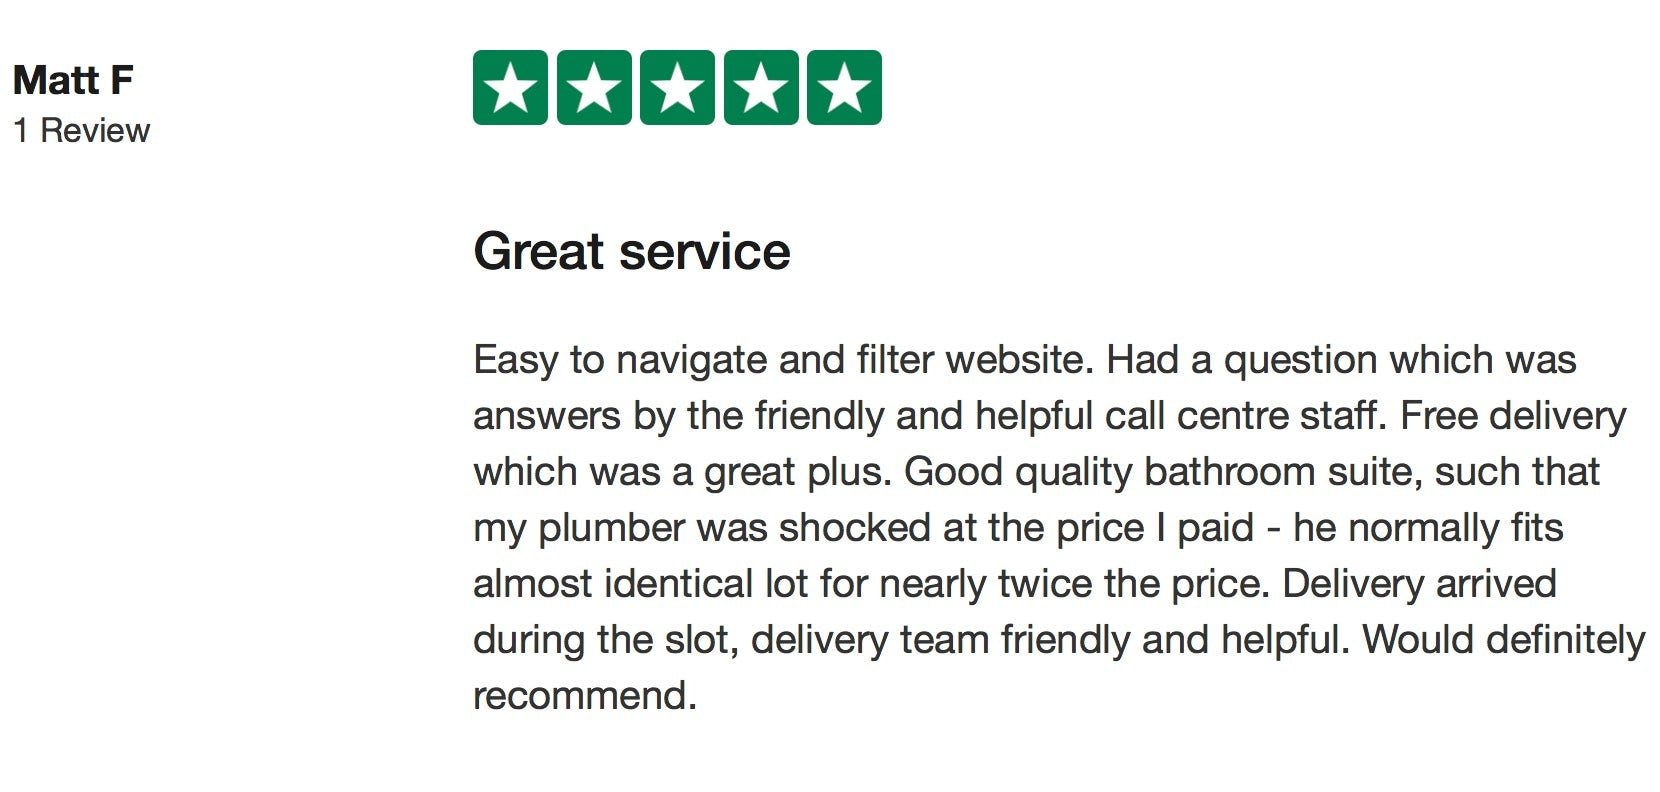 Matt F Trustpilot review